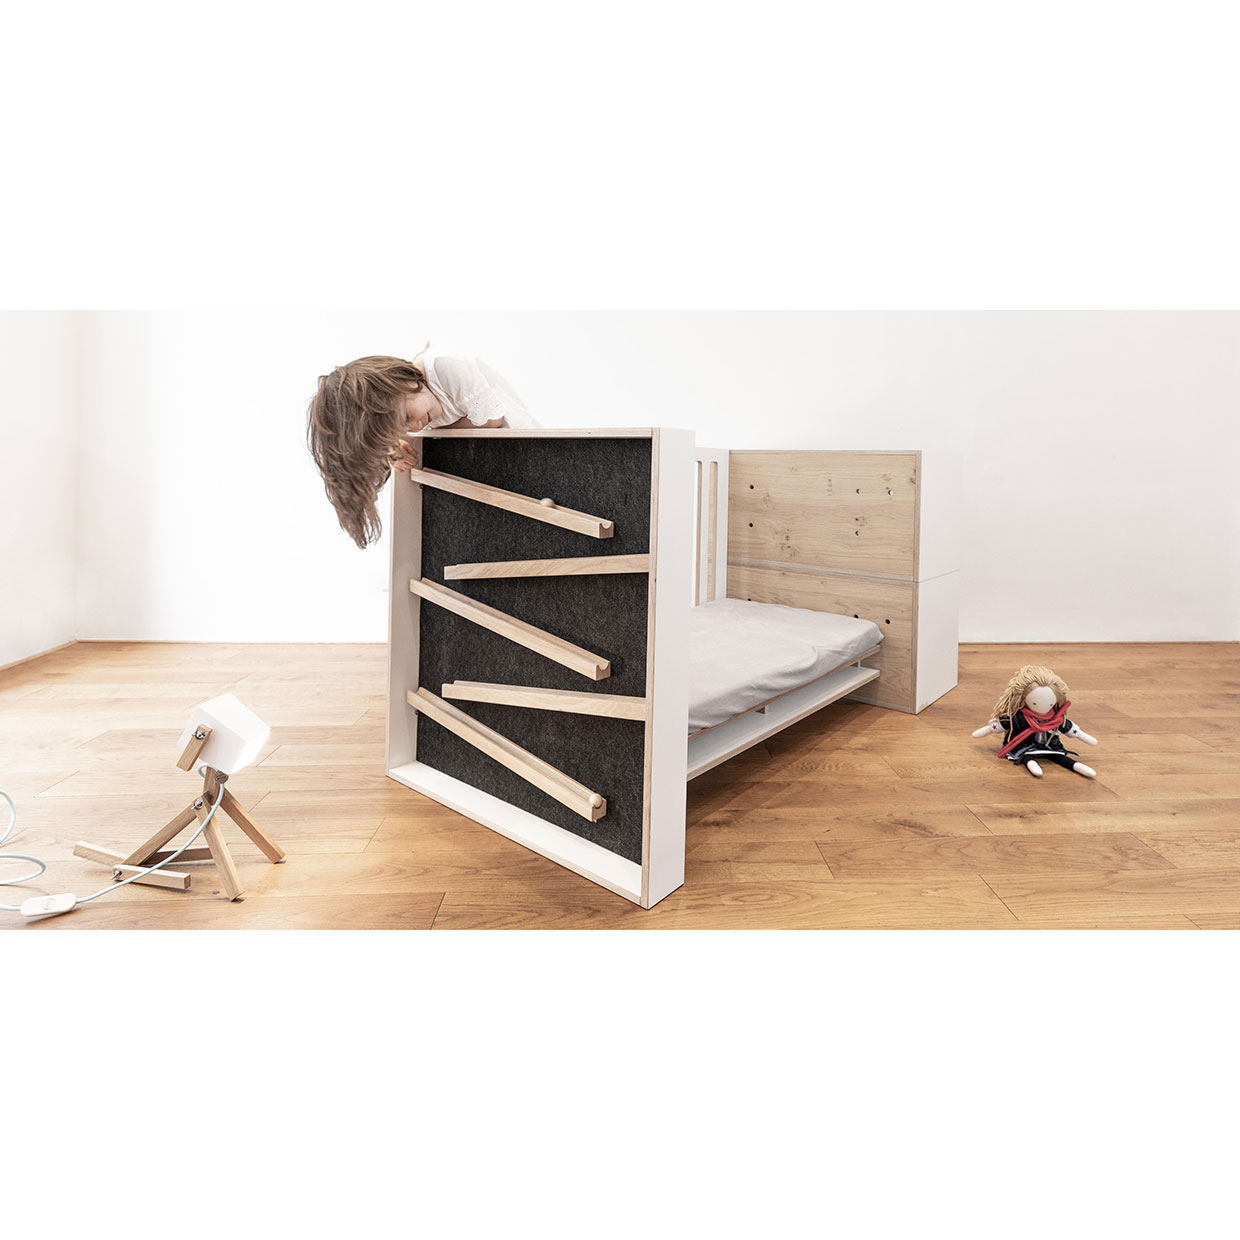 Filomi Growing Furniture System For Kids